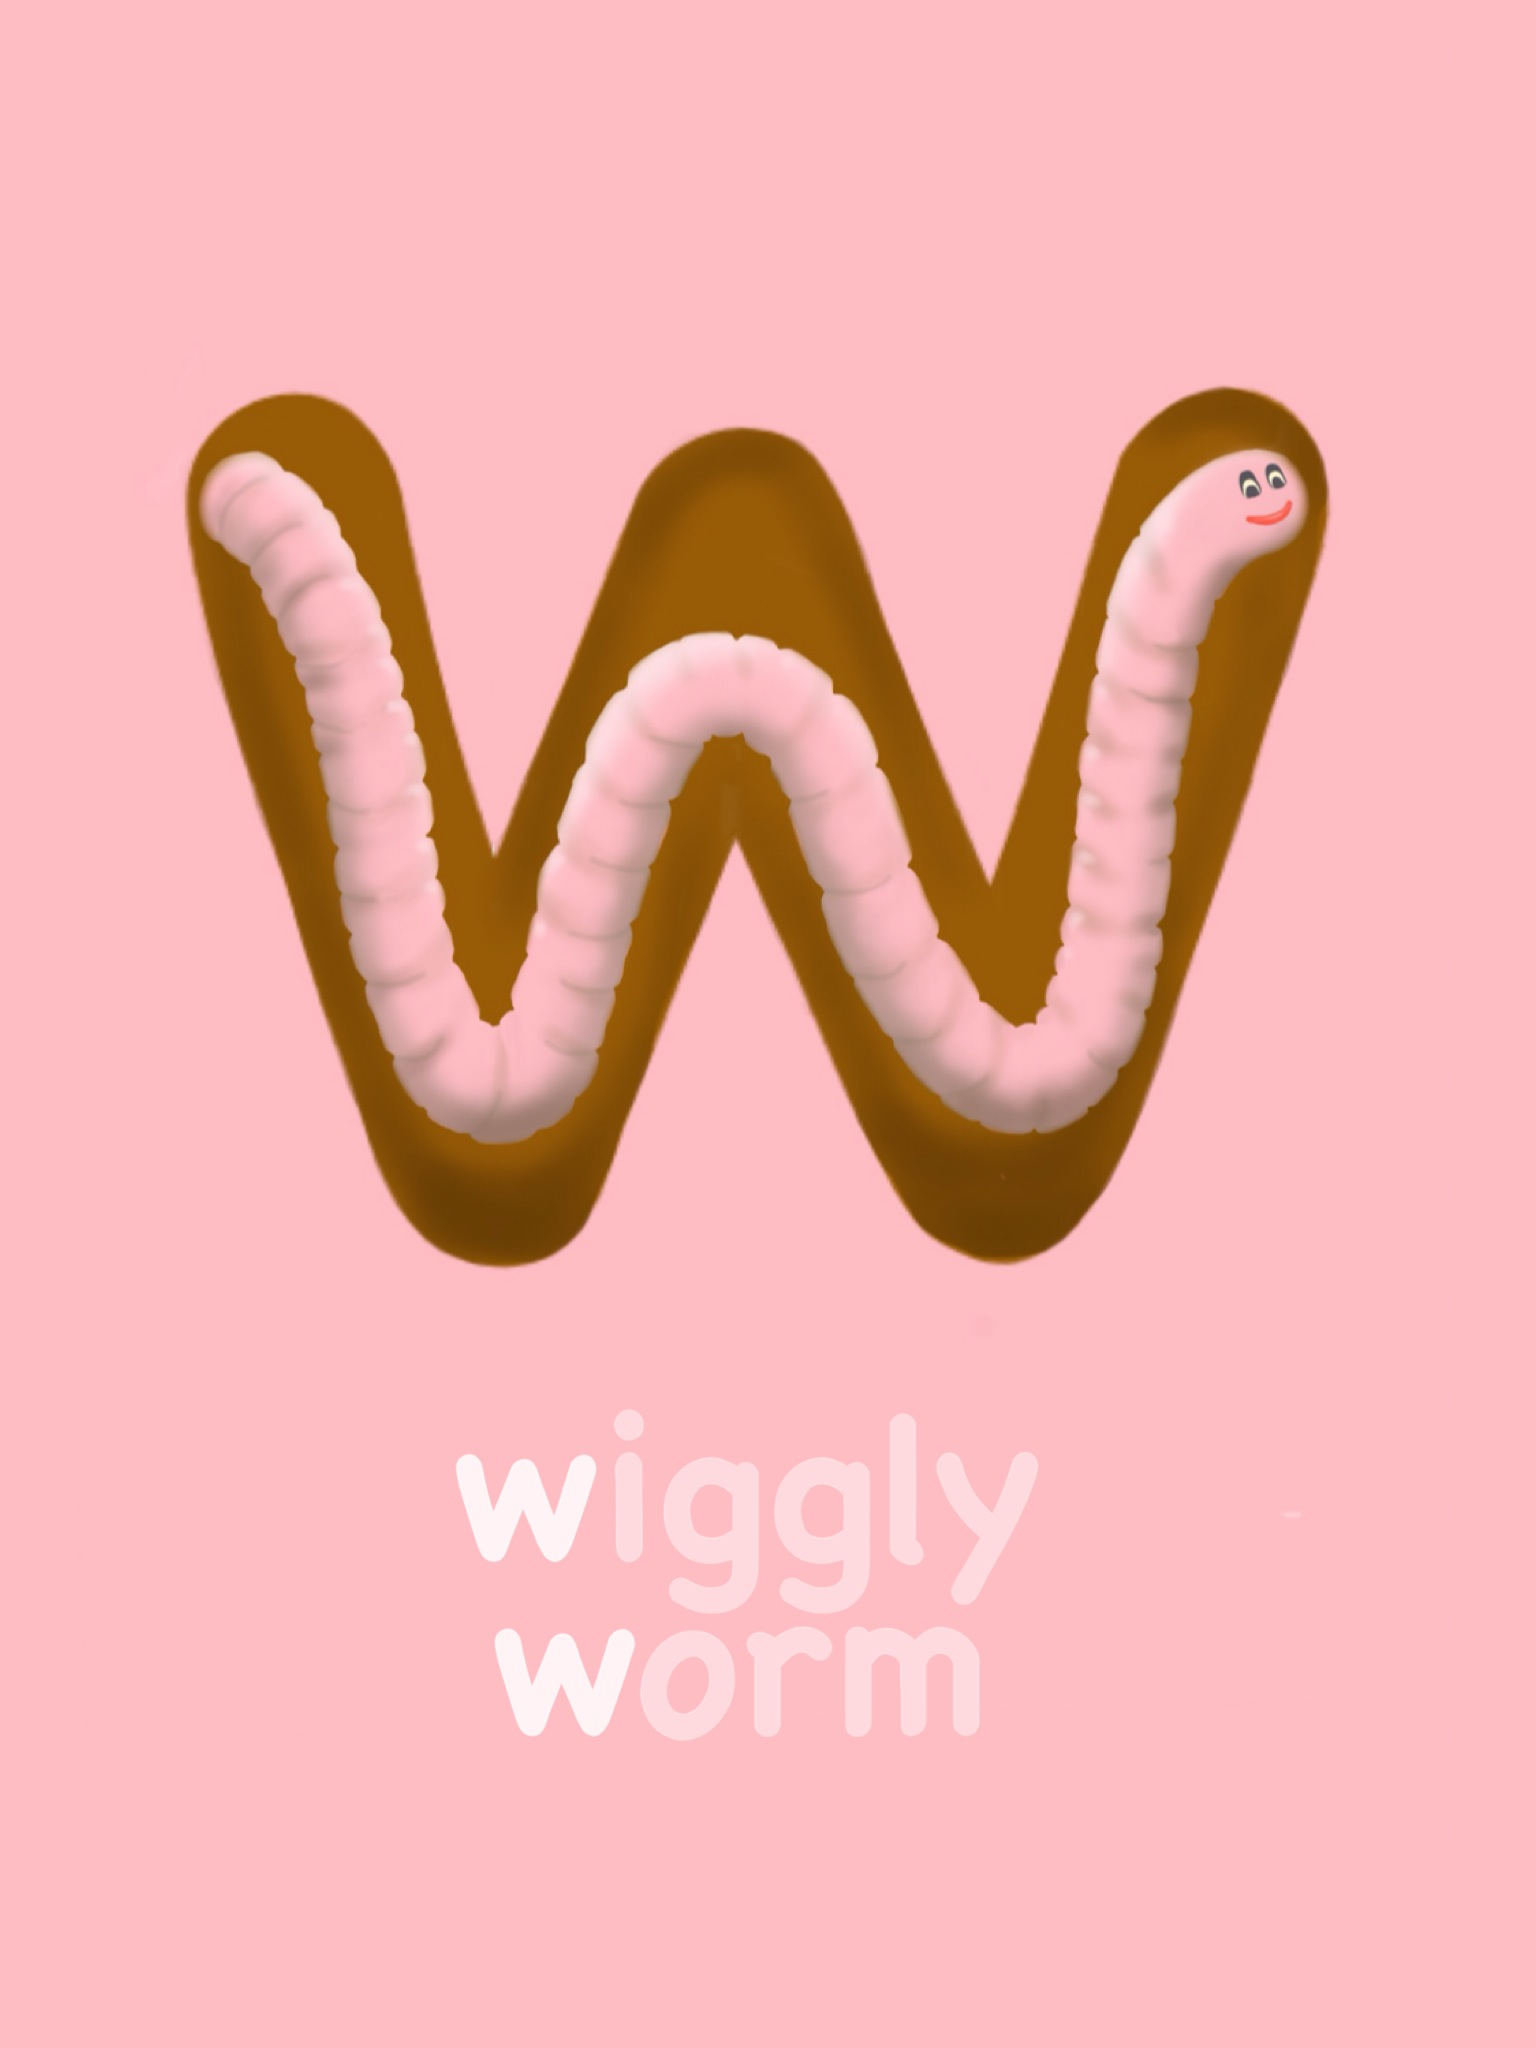 Letter W - Wiggly Worm